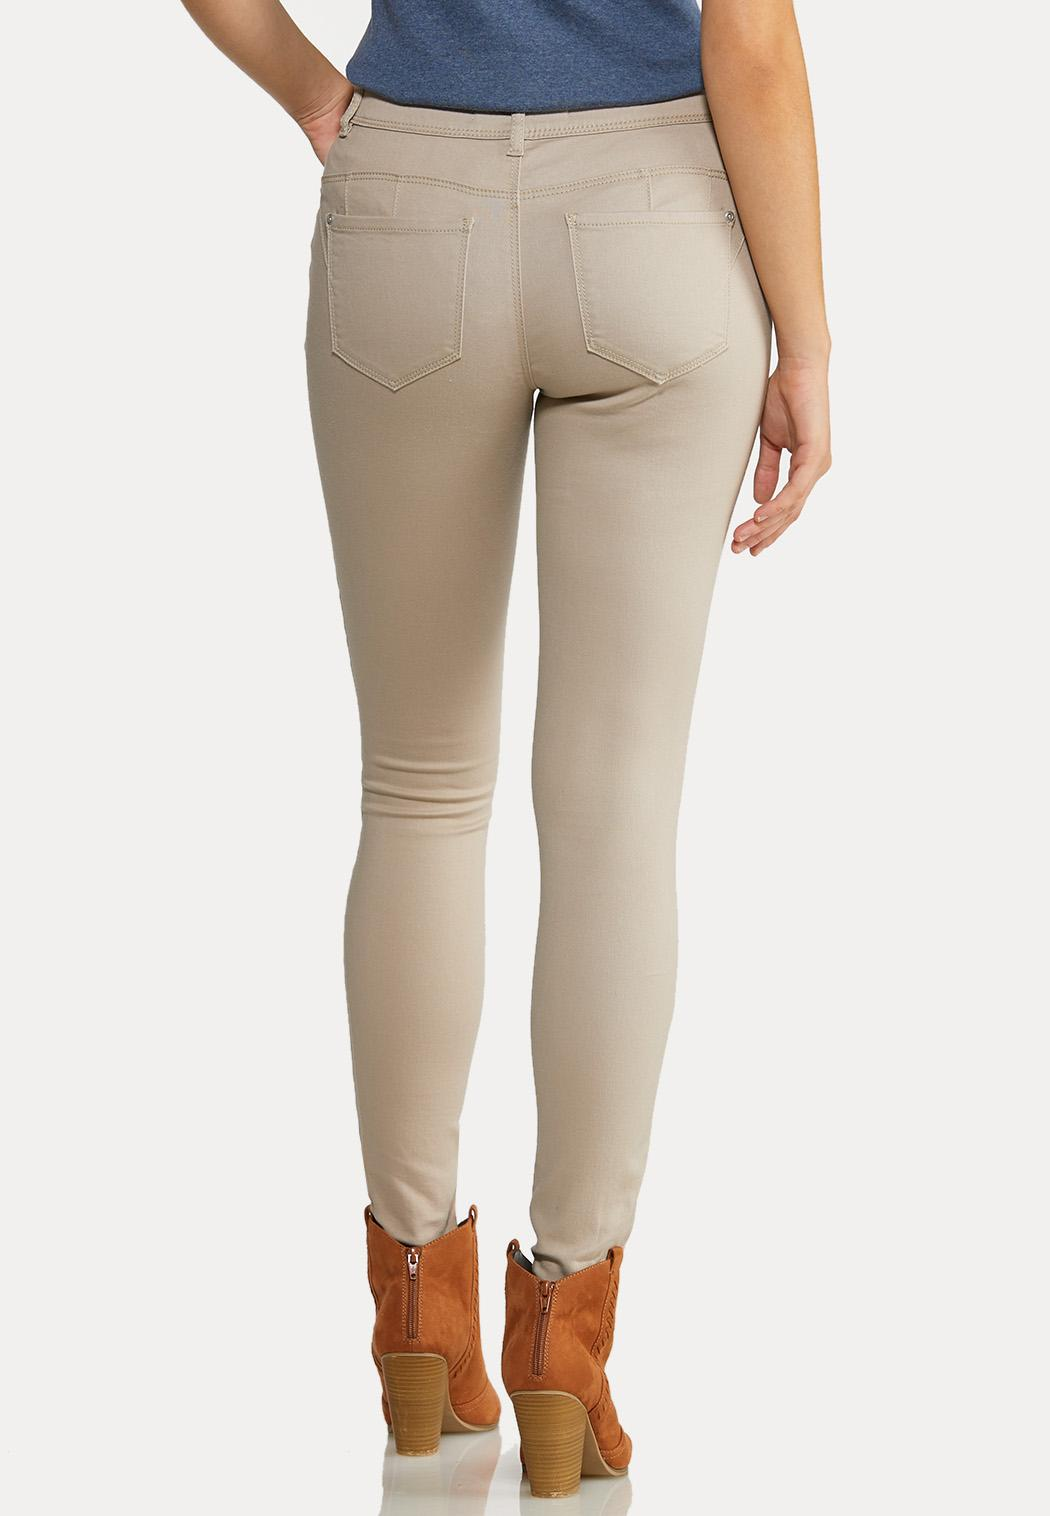 Petite The Perfect Neutral Jeggings (Item #43949487)